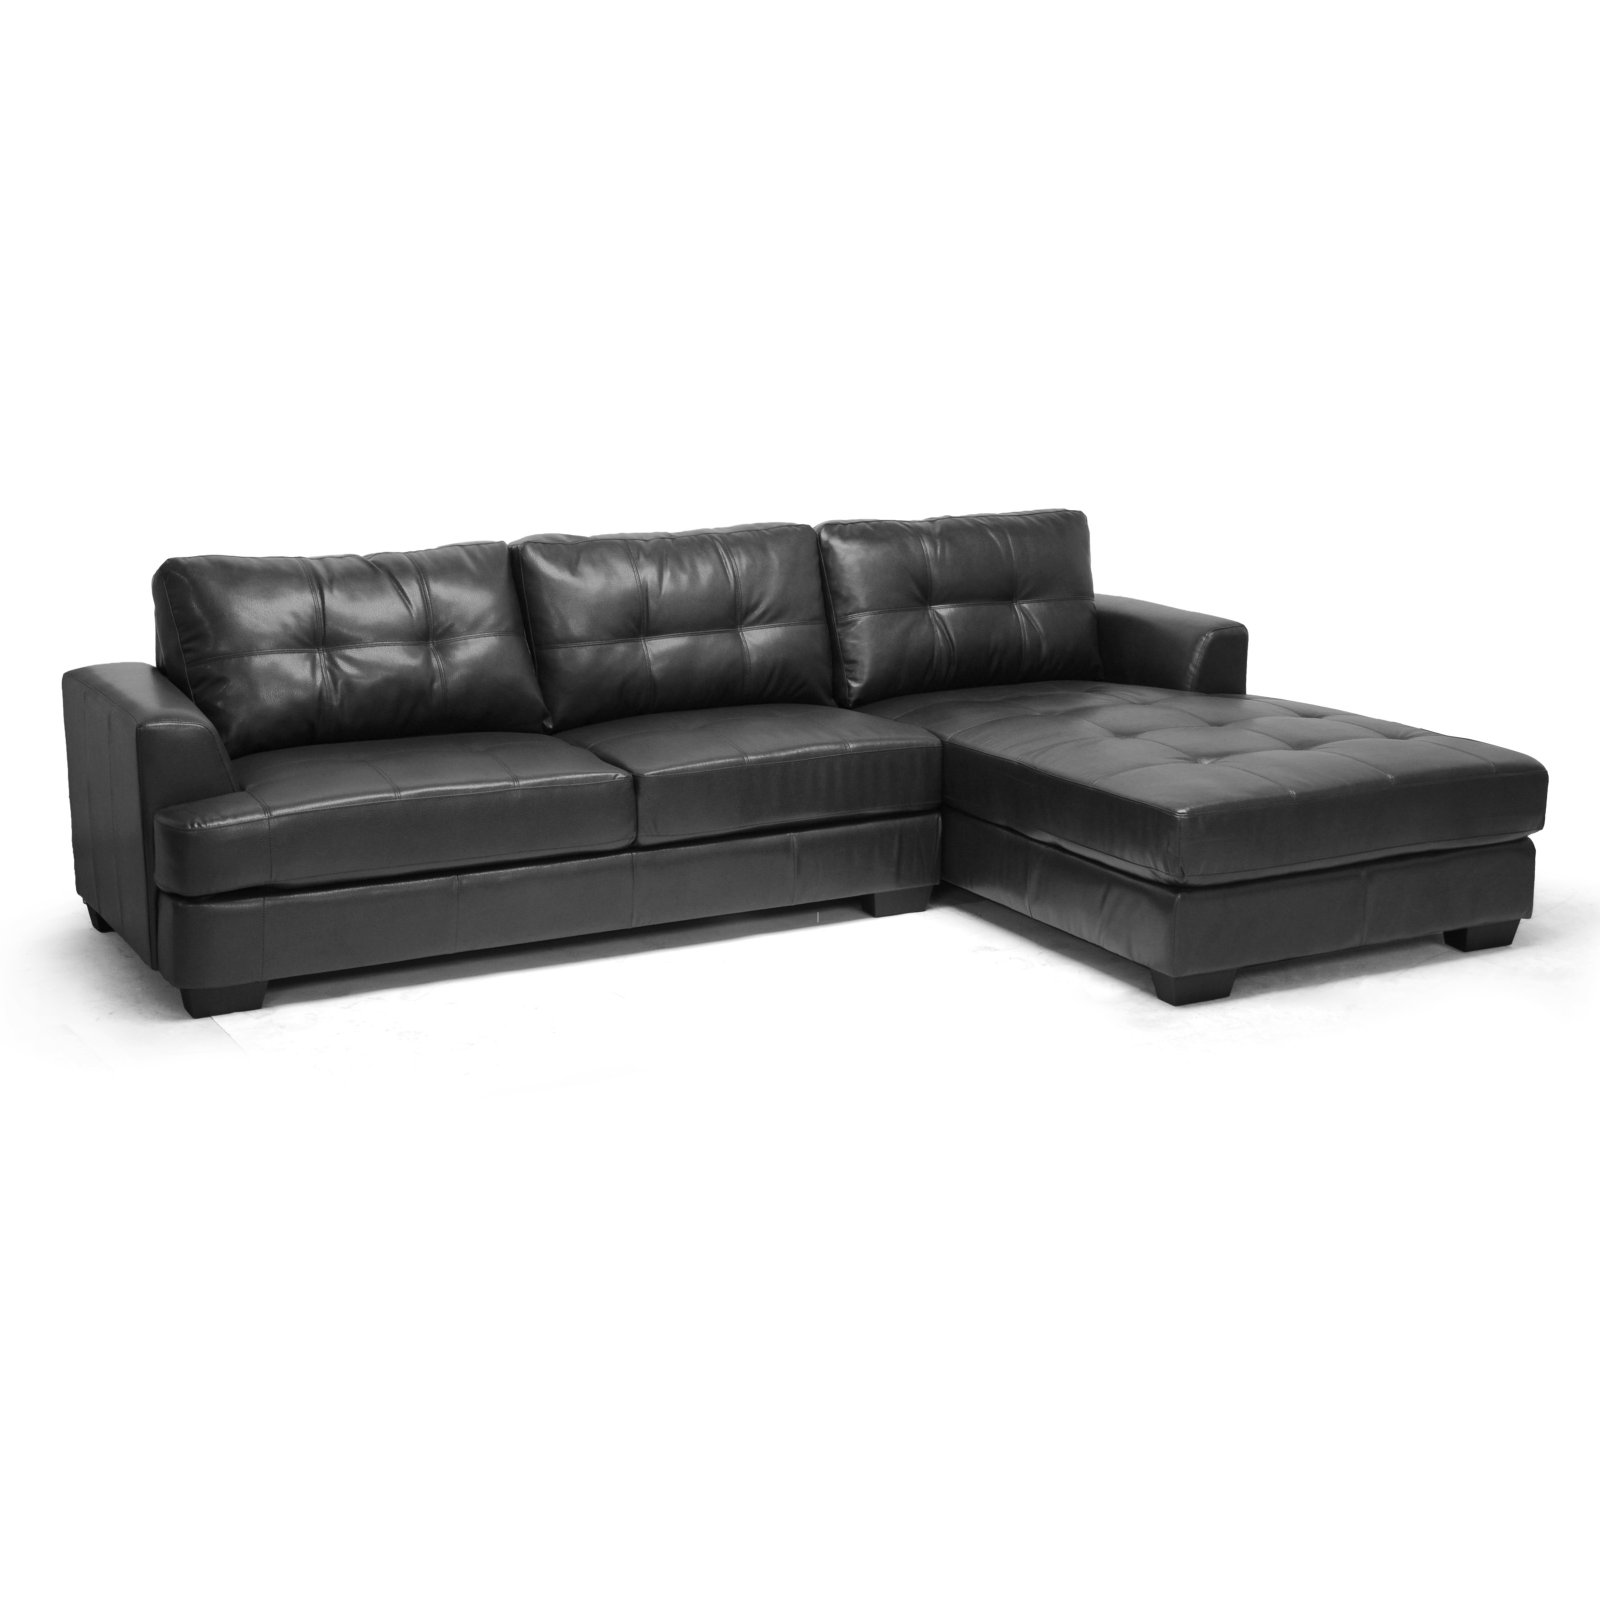 Baxton Studio Dobson Black Leather Modern Sectional Sofa Walmart